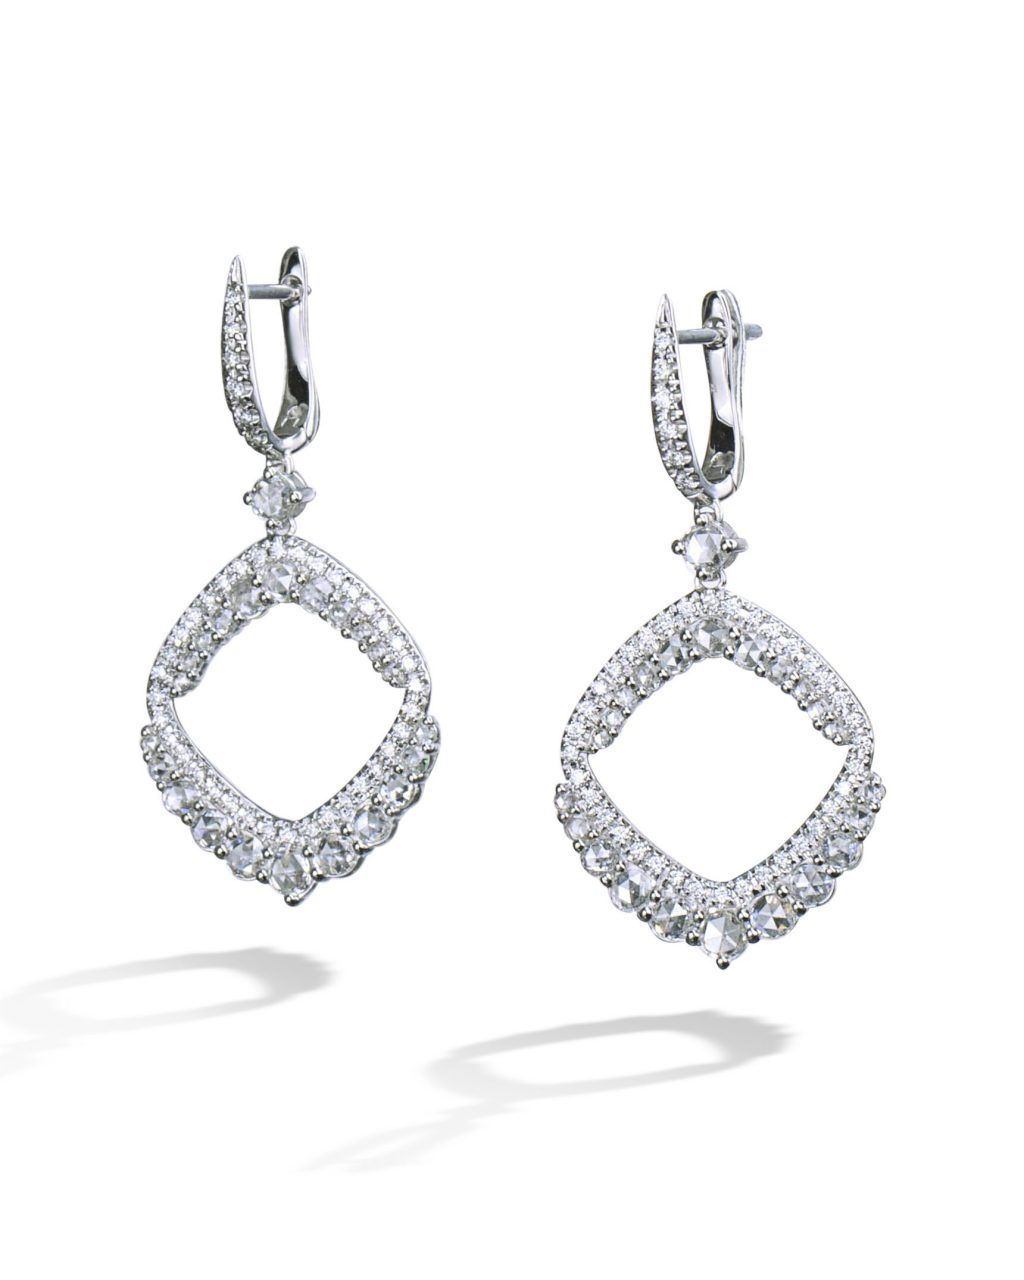 18 Karat White Gold Earrings Set With 46 Rose Cut Diamonds And 84 Round Brilliant All Weigh A Total 1 52 Carats